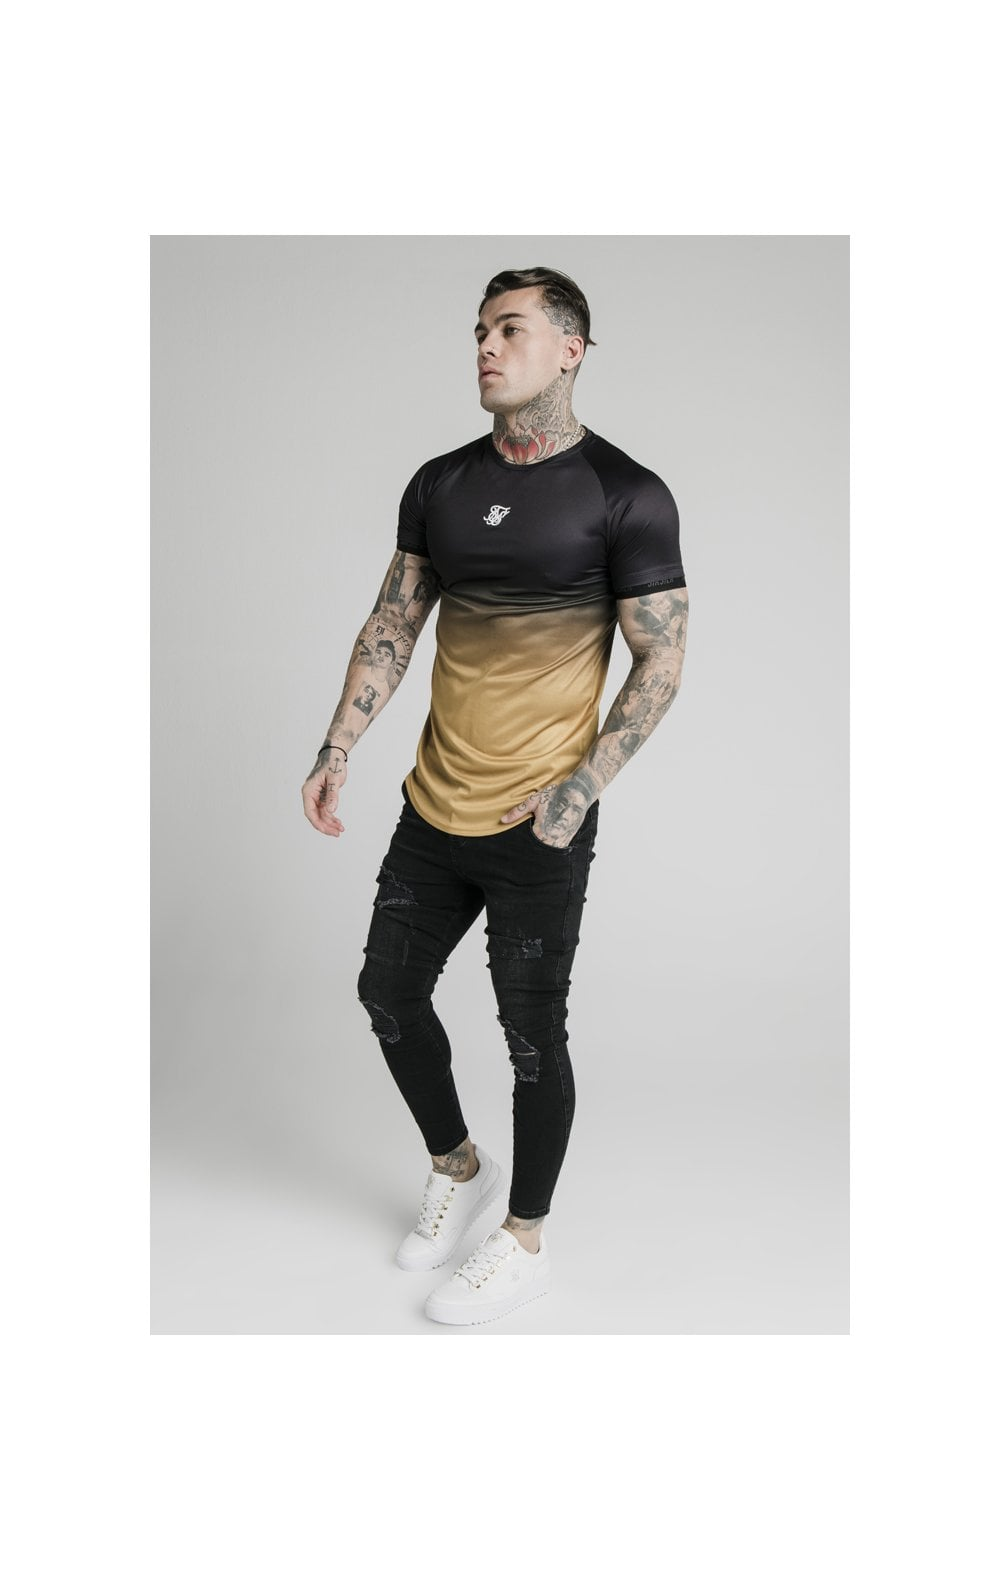 SikSilk S/S  Fade Tech Tee - Black & Gold (3)